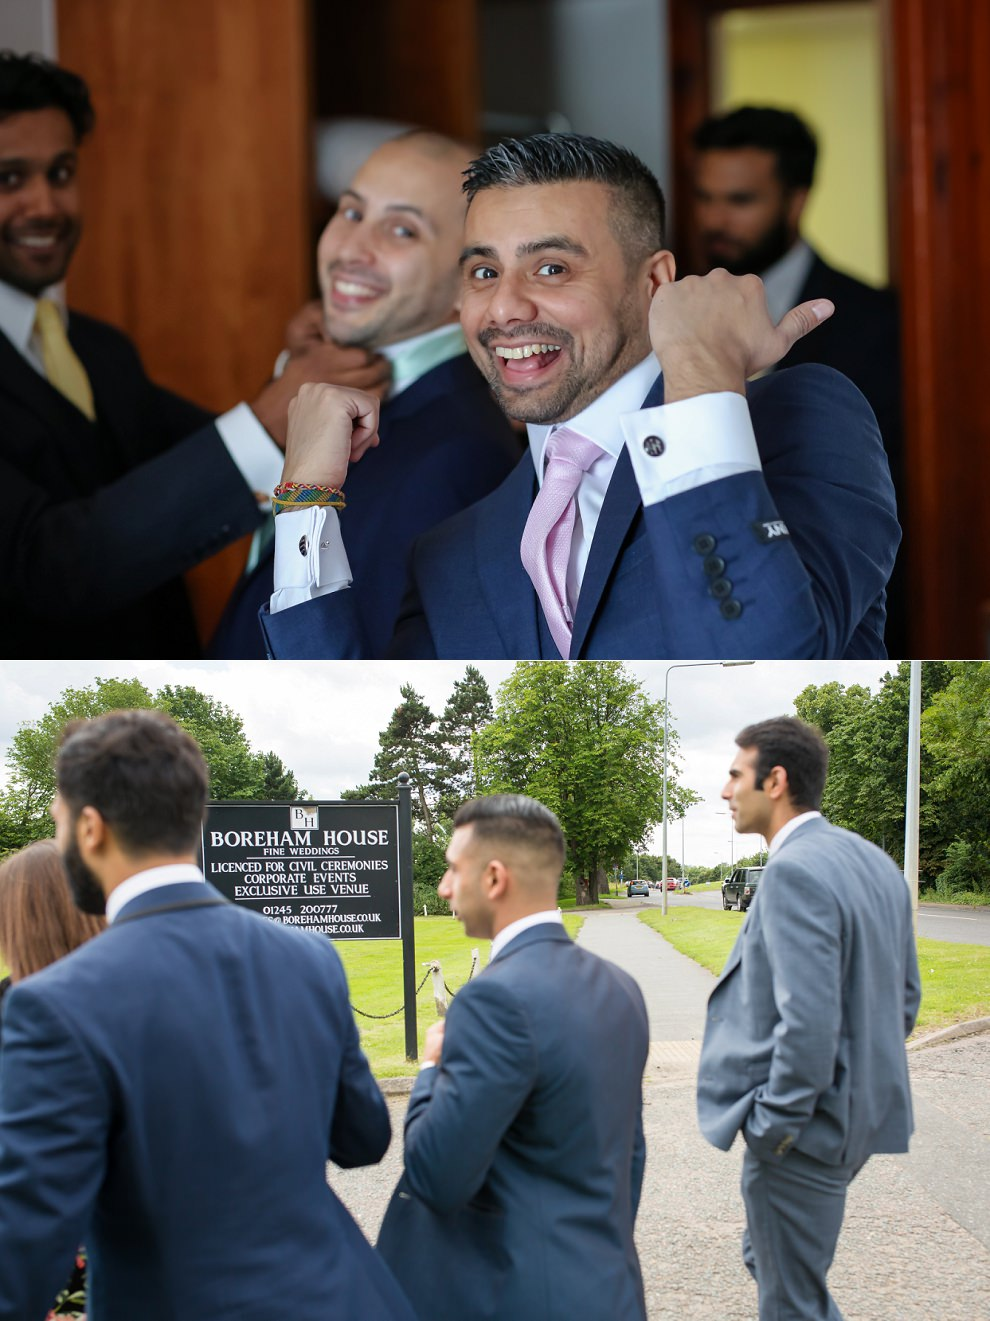 Boreham-House-Wedding-Essex-Rupal Dipen-10